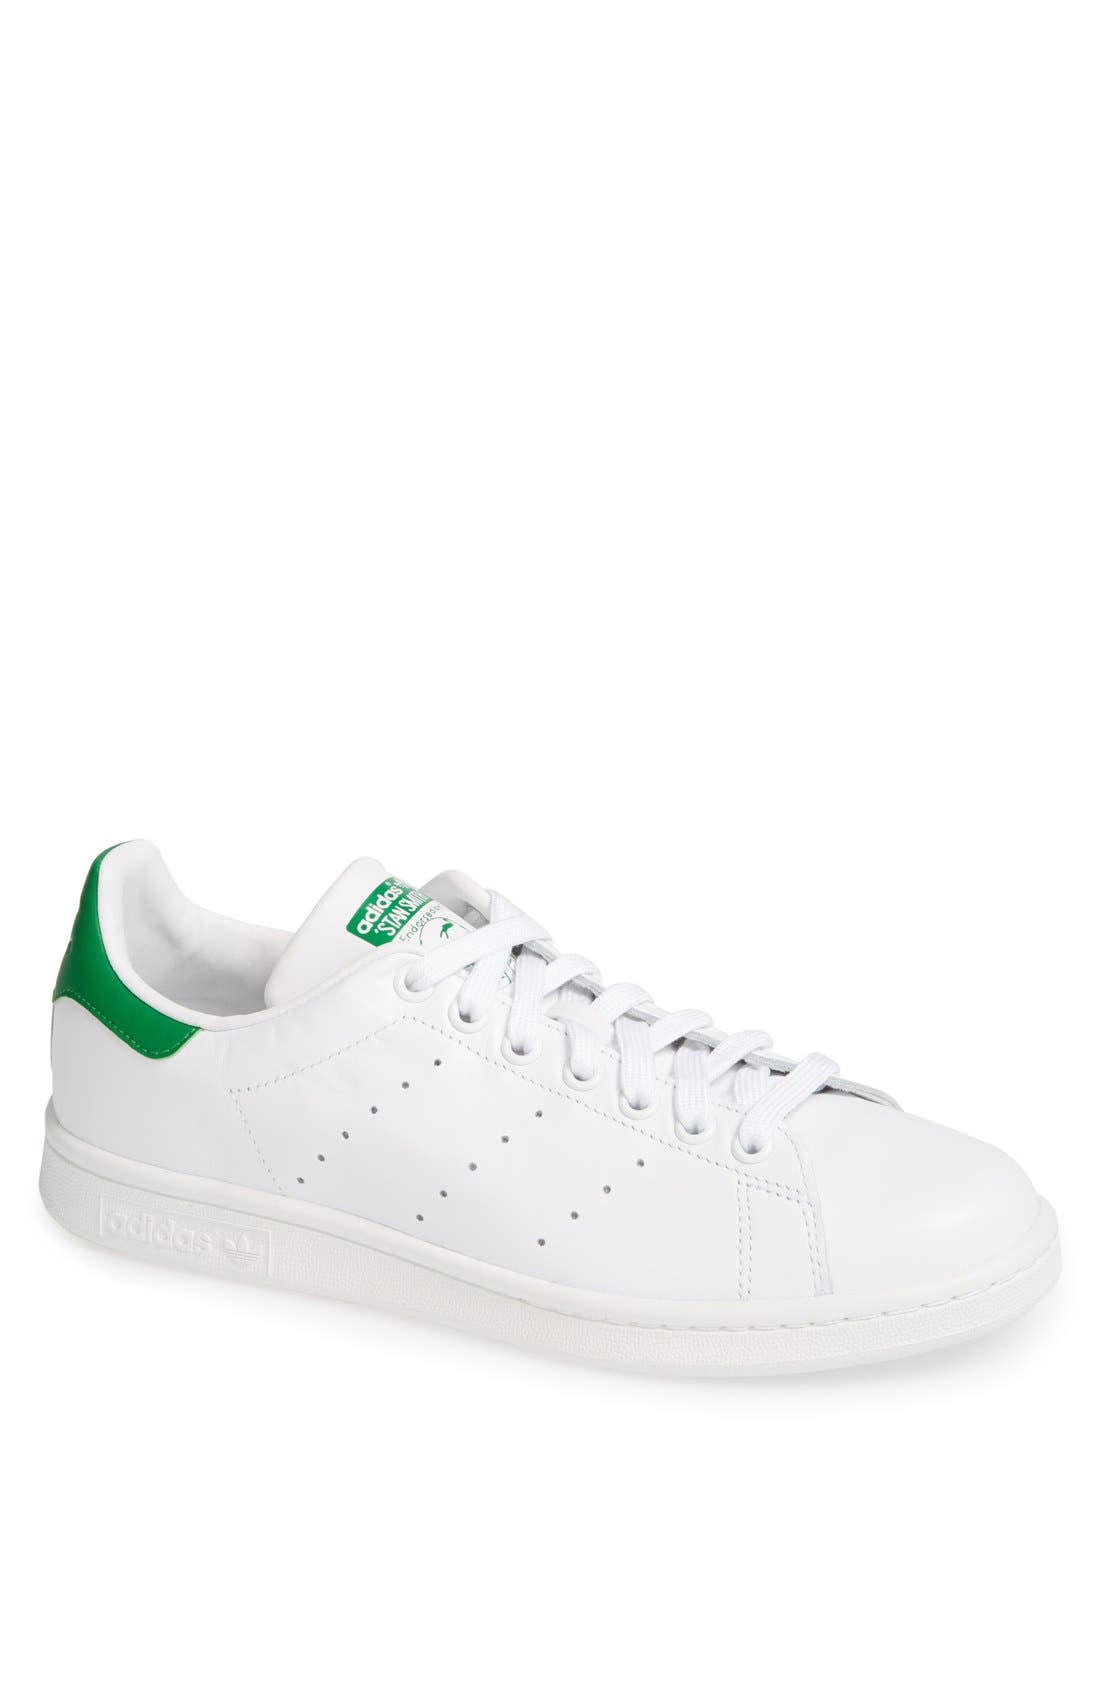 Main Image - adidas \u0027Stan Smith\u0027 Sneaker (Women)